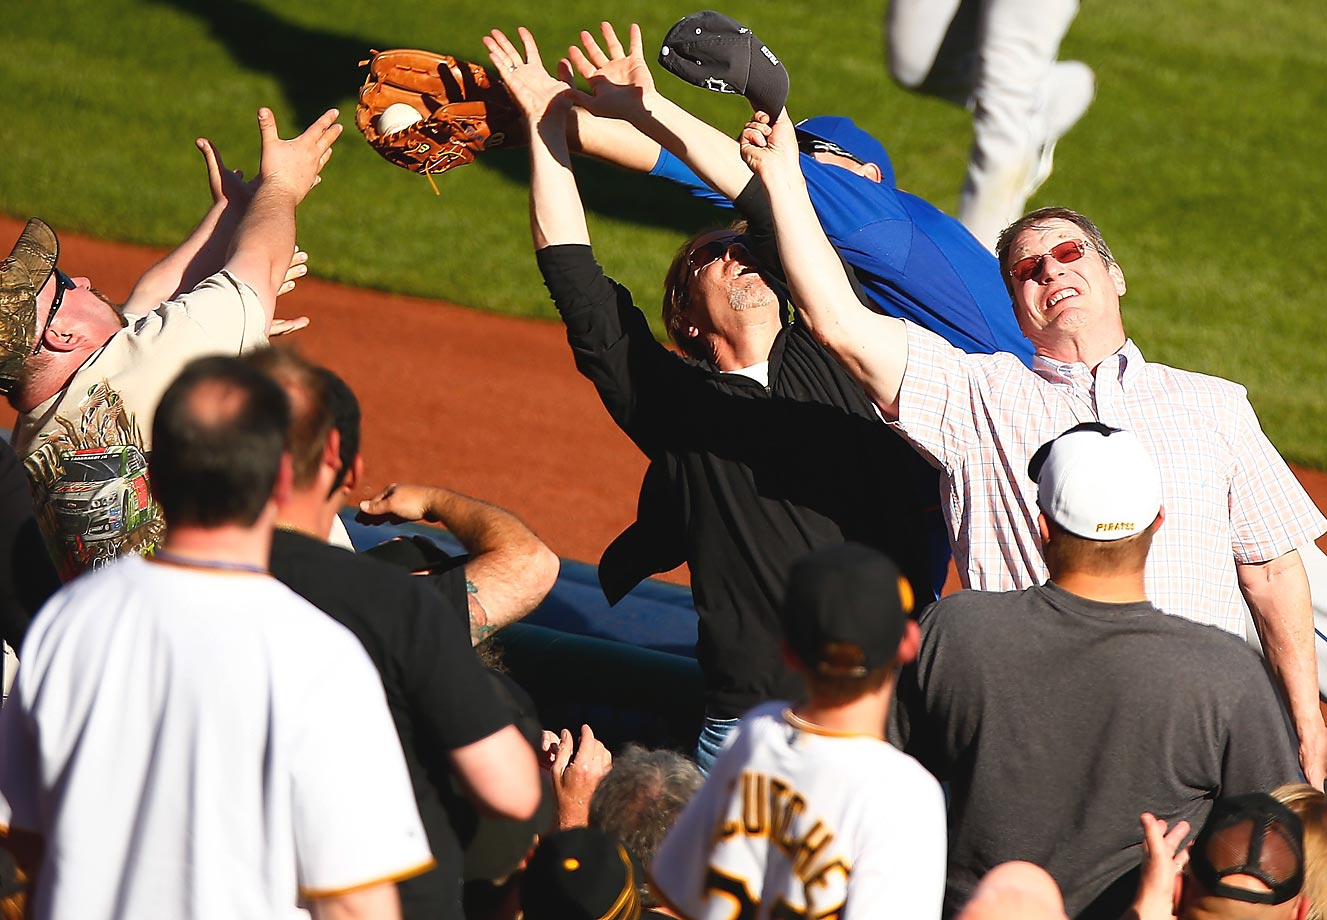 Eric Campbell of the New York Mets attempts to catch a fly ball over fans during a game against the Pittsburgh Pirates.